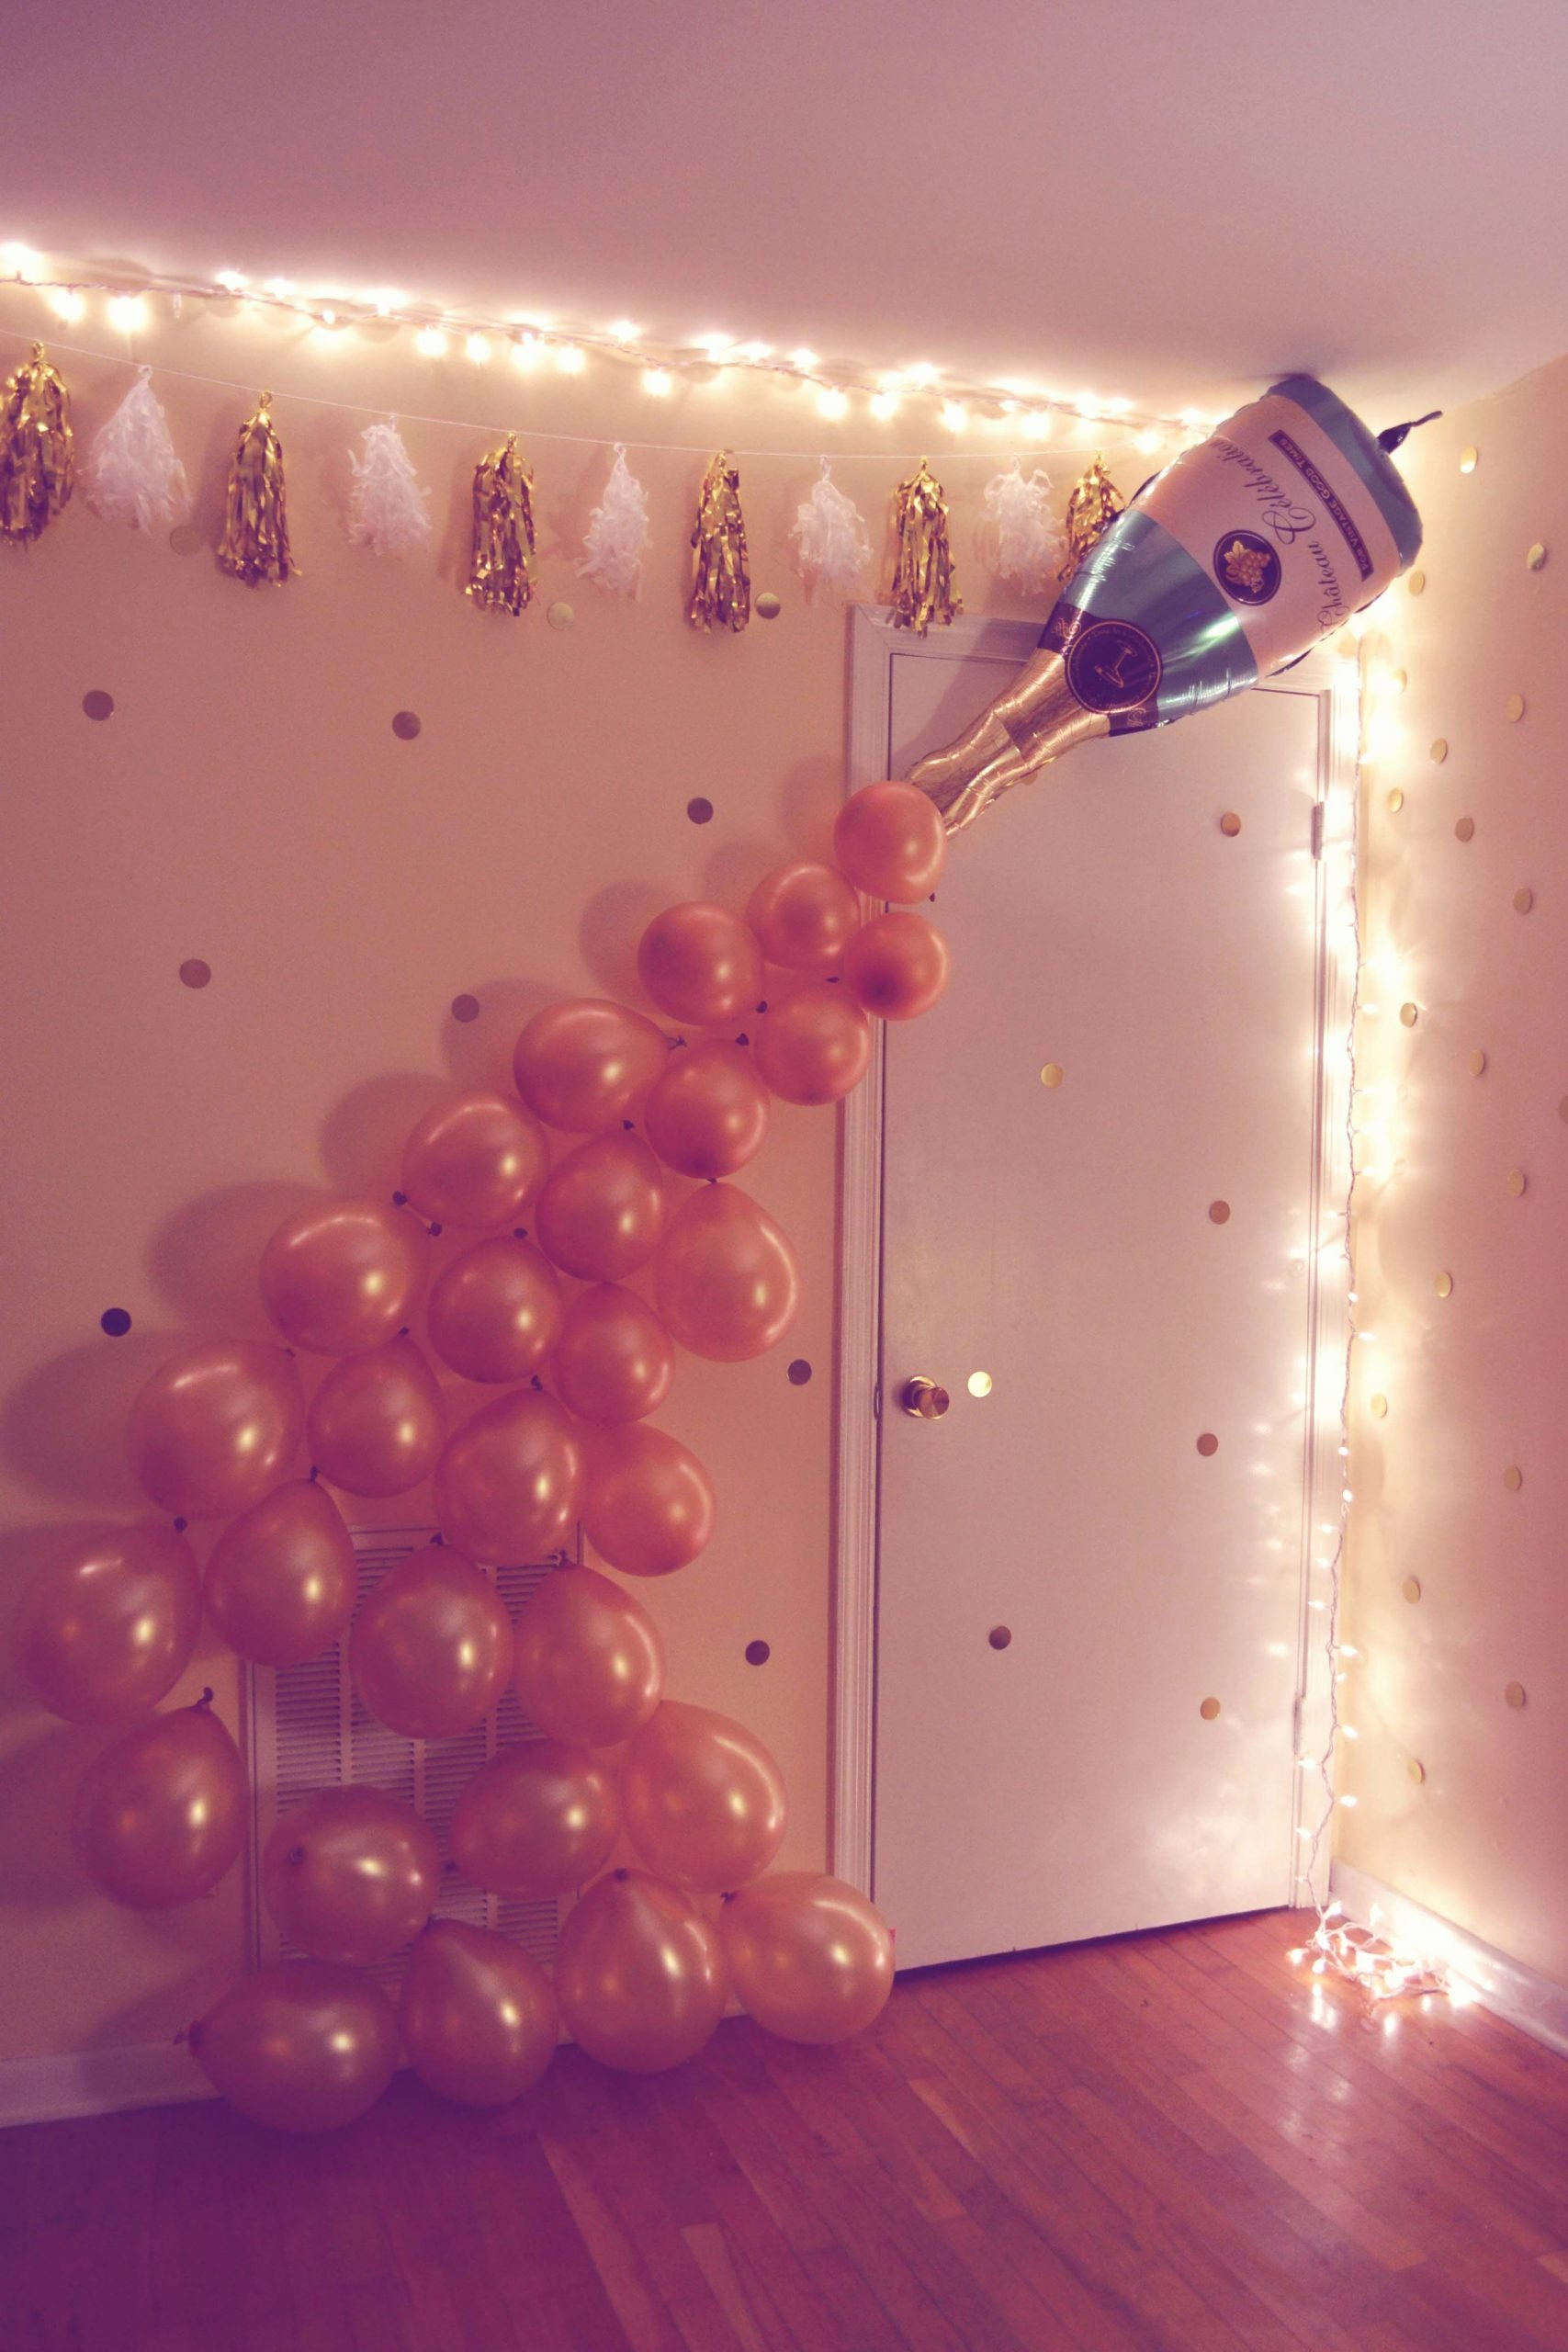 21st Birthday Decoration Ideas at Home Awesome Diy 21st Birthday Party